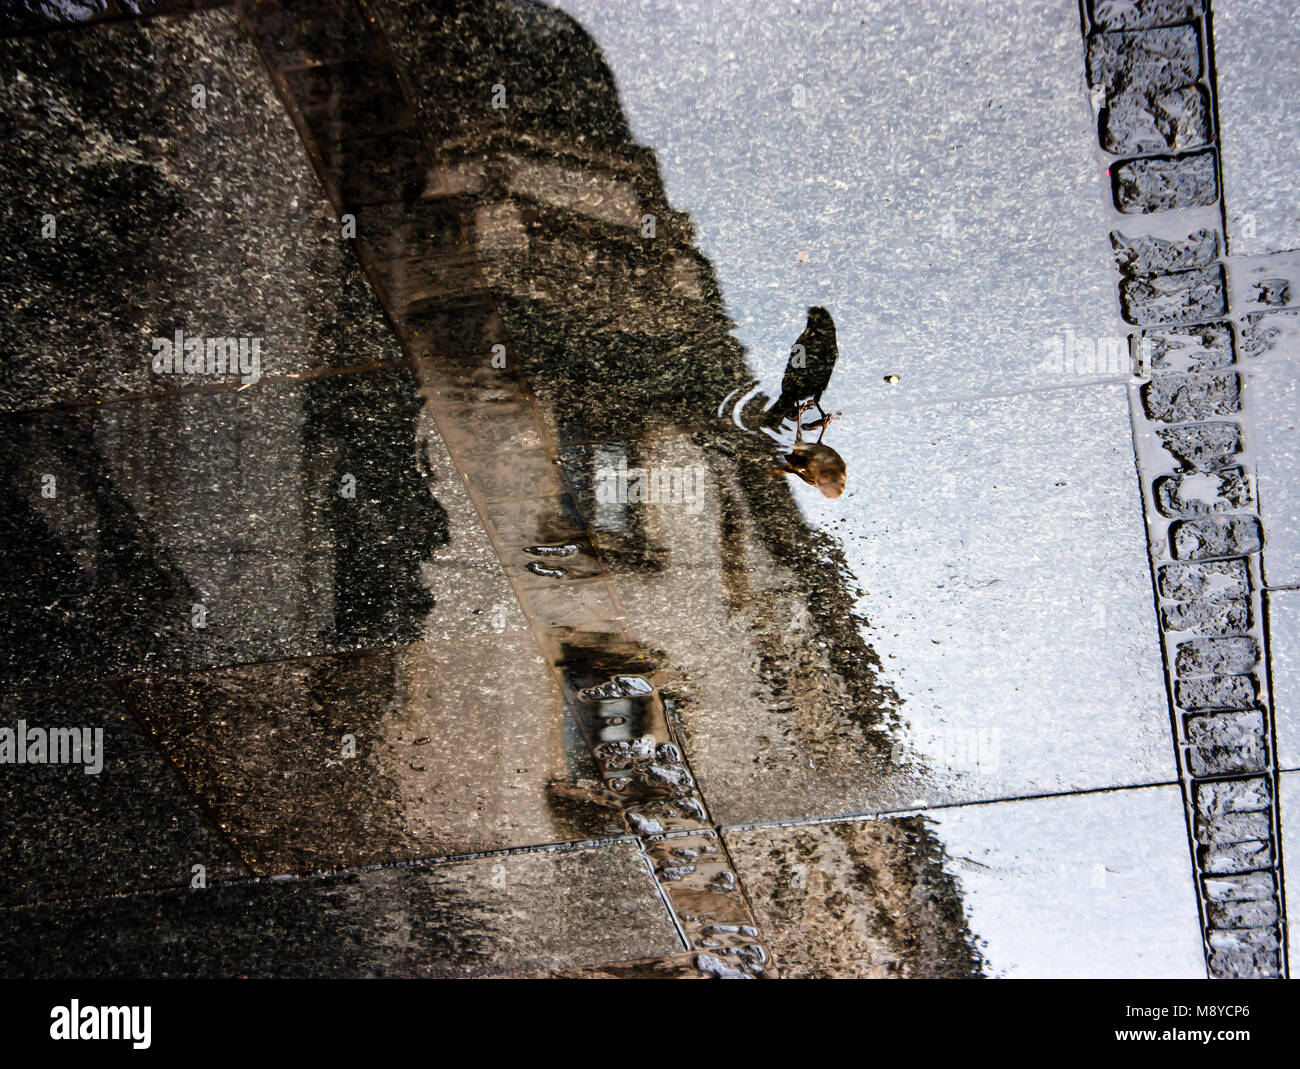 Blurry reflection shadow of a sparrow and a city on a rainy day sidewalk Stock Photo